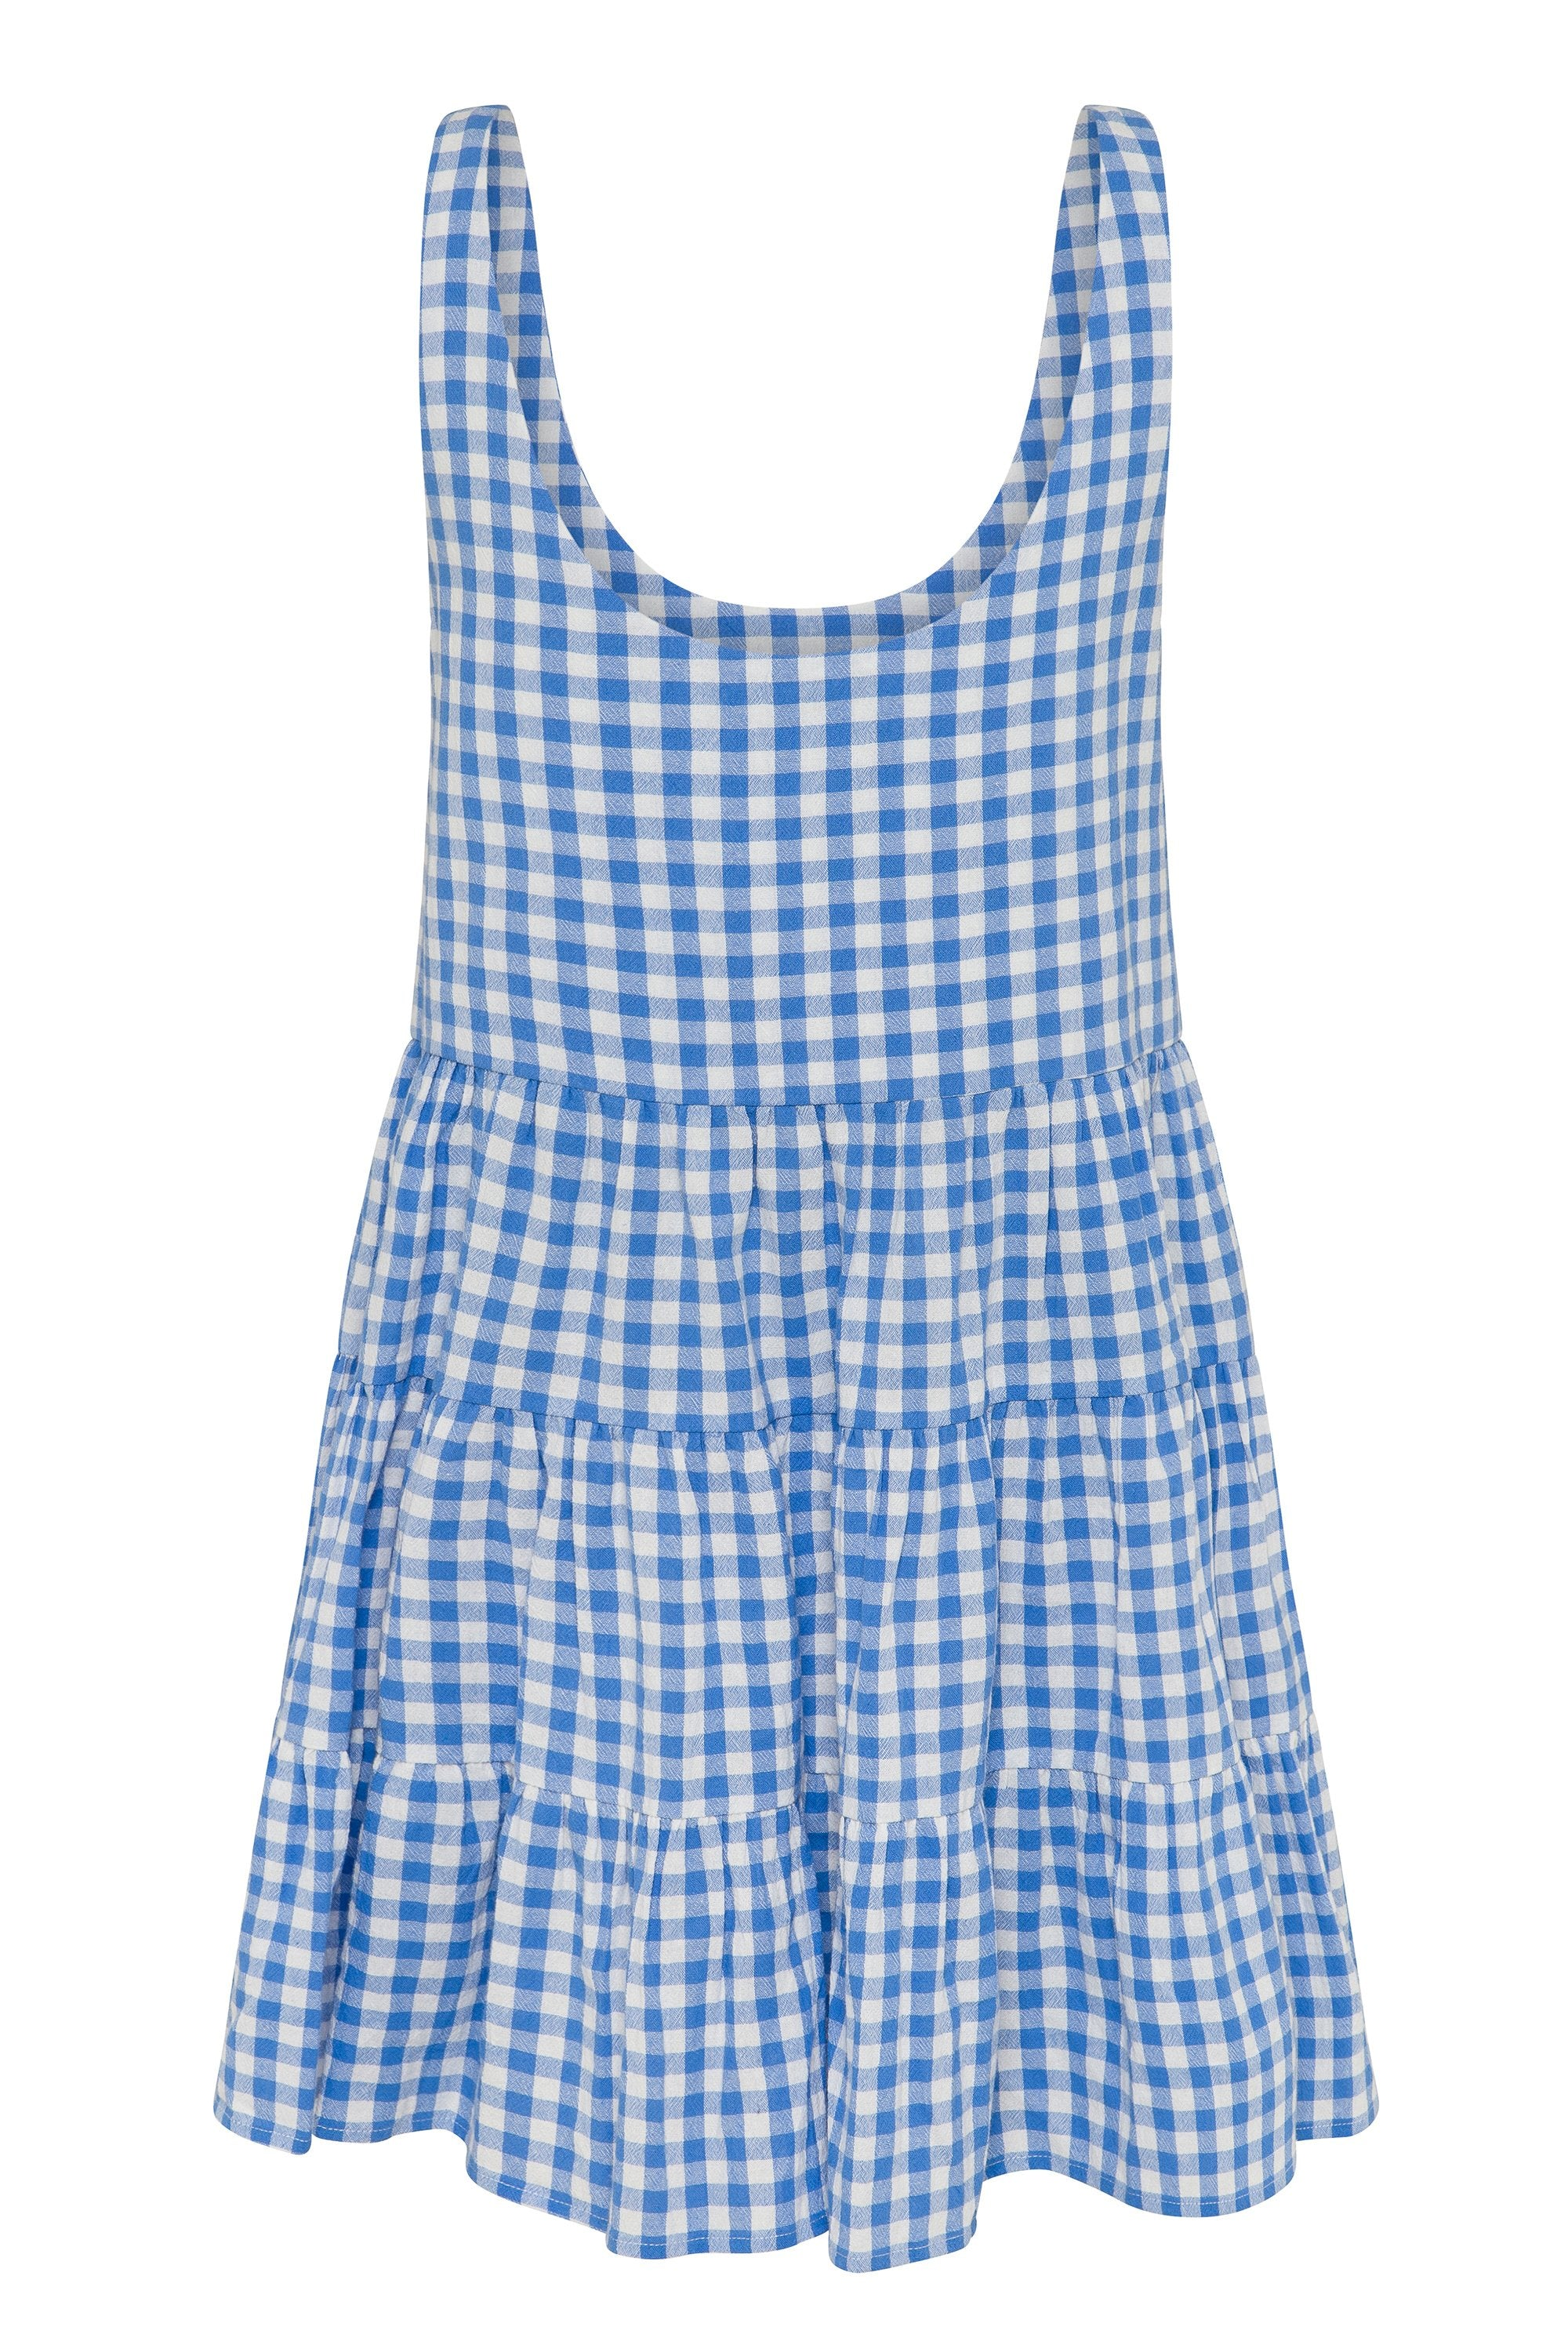 Winifred Dress In Blue Gingham